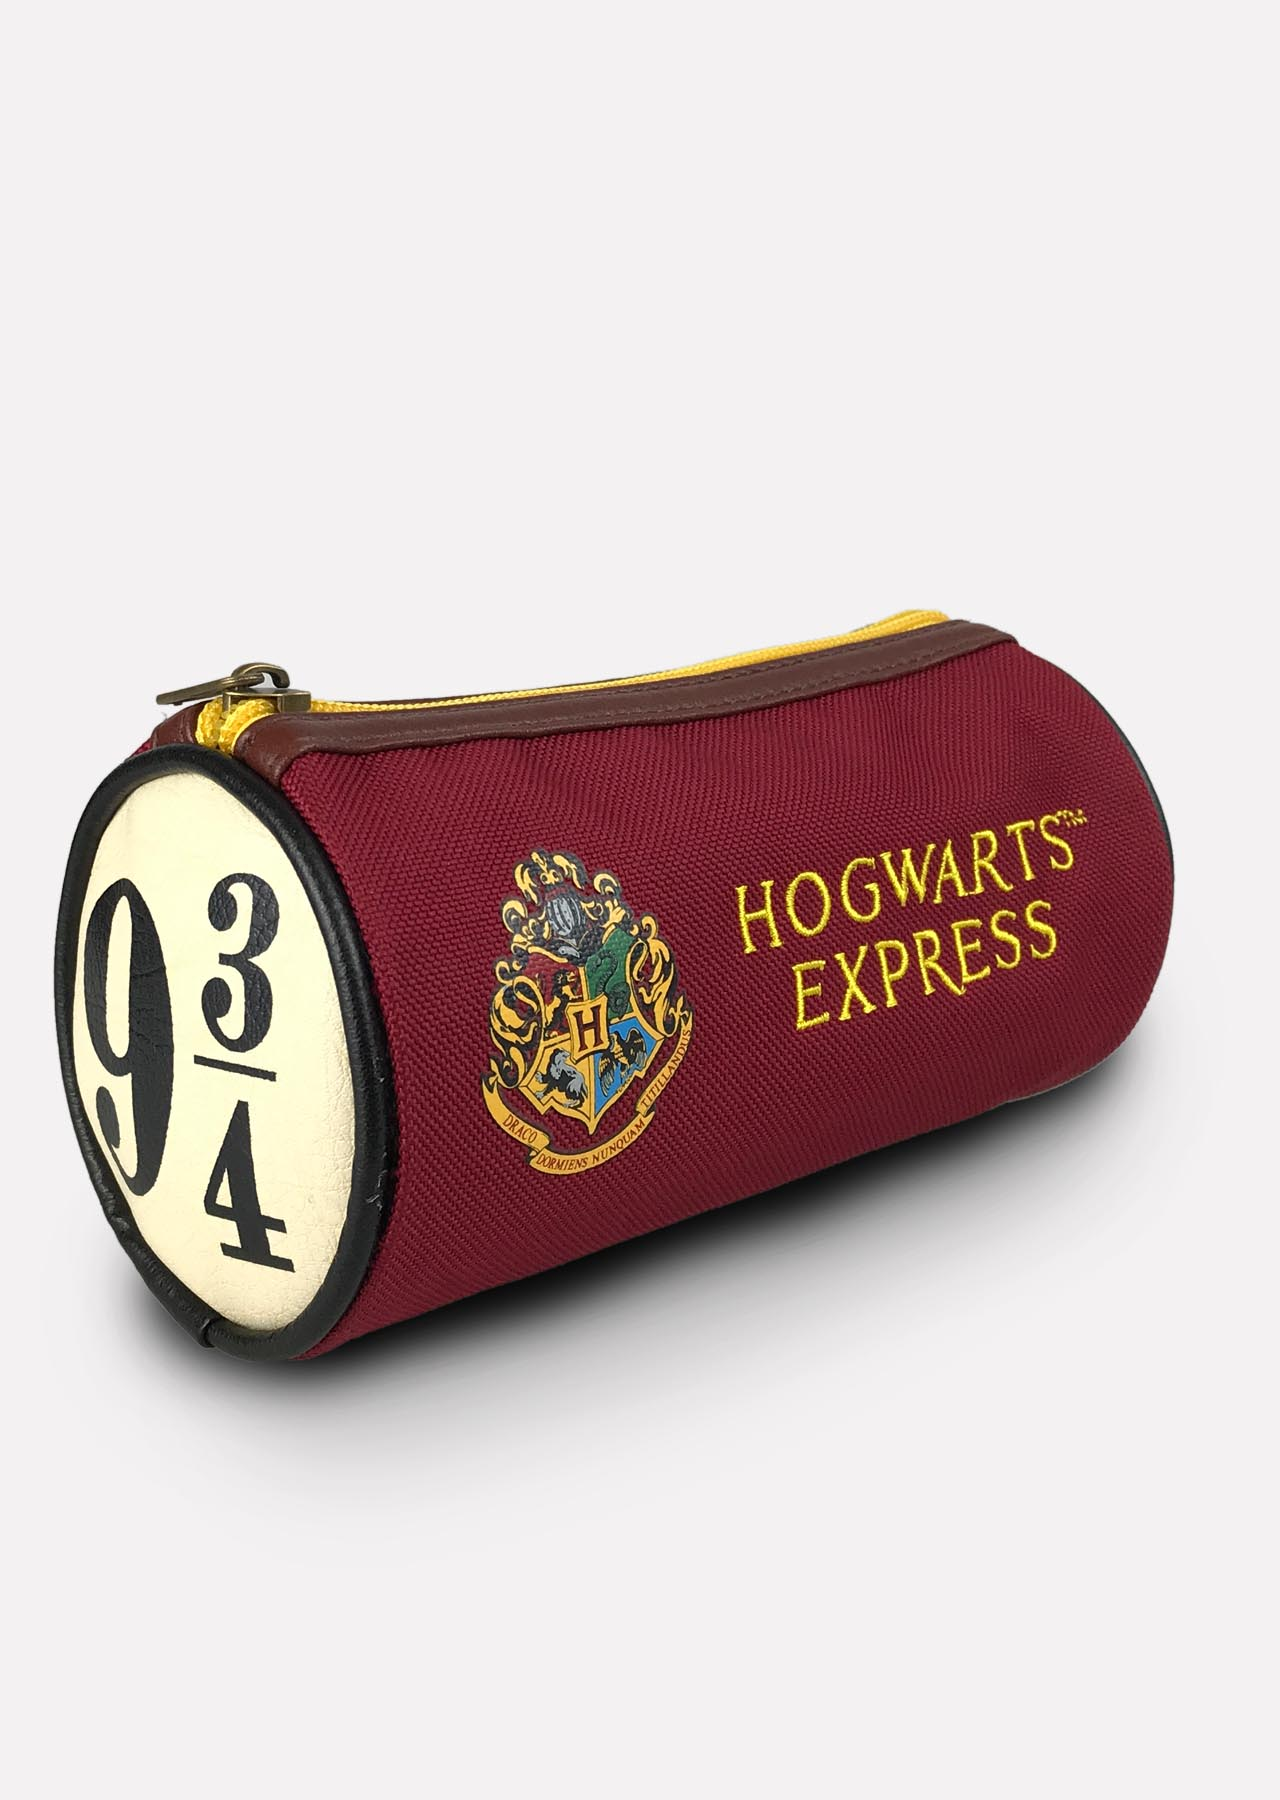 7360891f60a Harry Potter Hogwarts Express 9 3 4 Make-up Bag – Groovy UK